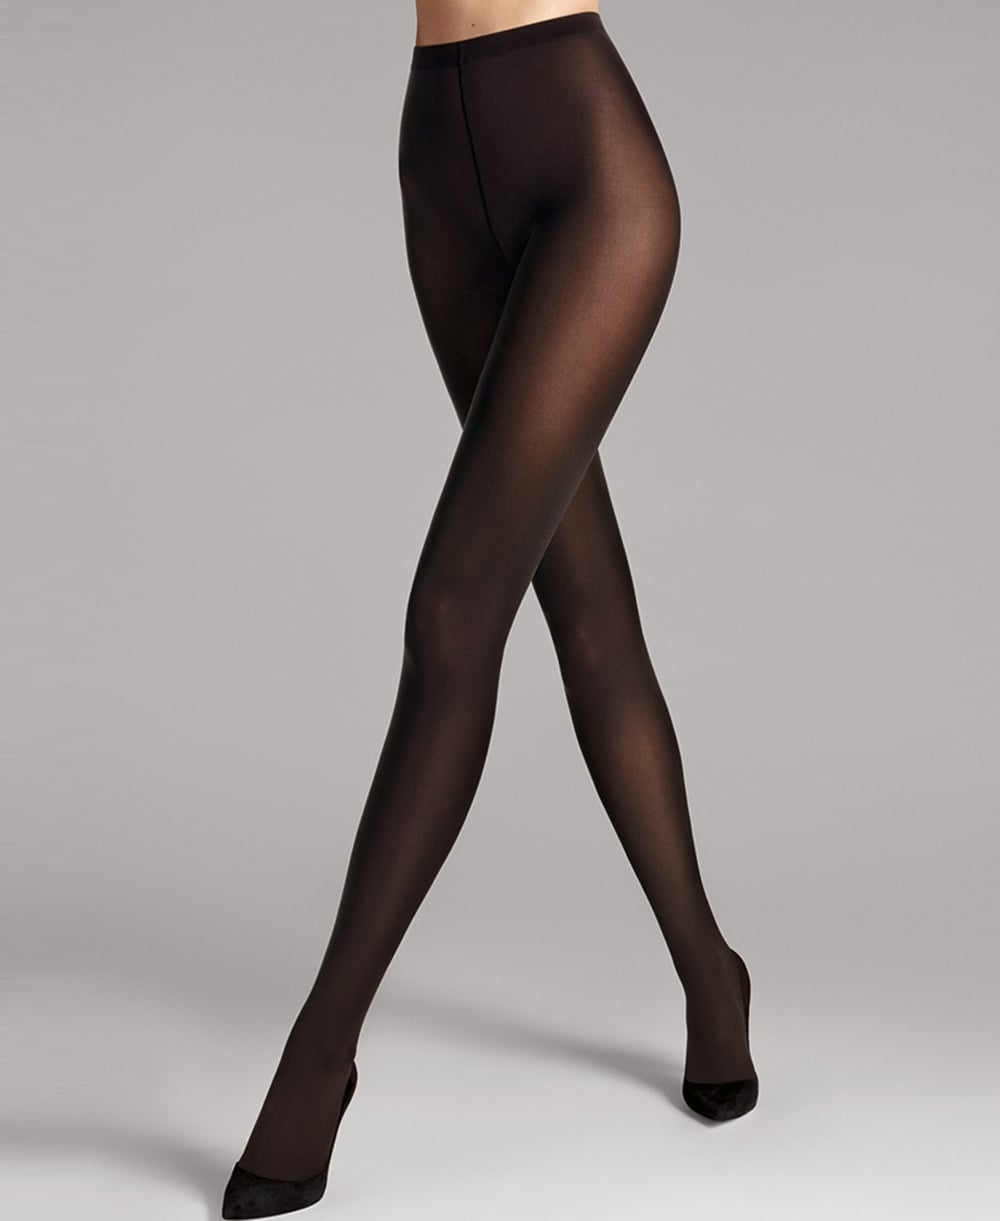 8daea7197f349 Wolford Opaque 70 Tights - Tights from luxury-legs.com UK